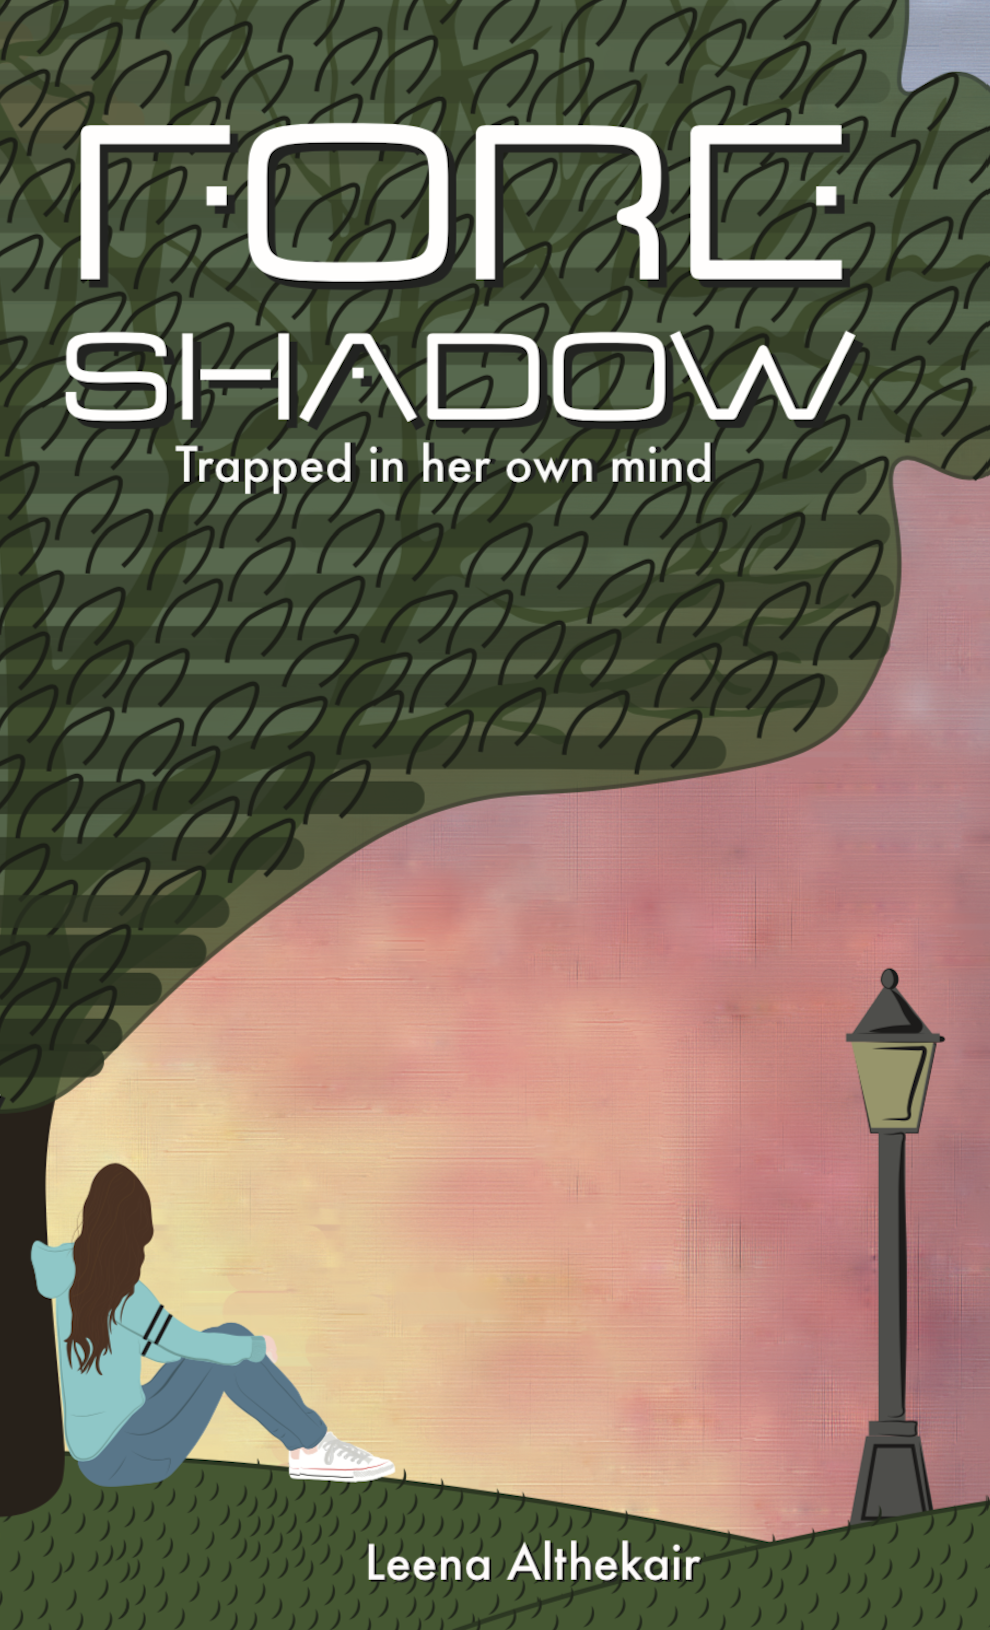 Foreshadow: Trapped in Her Own Mind - book author Leena